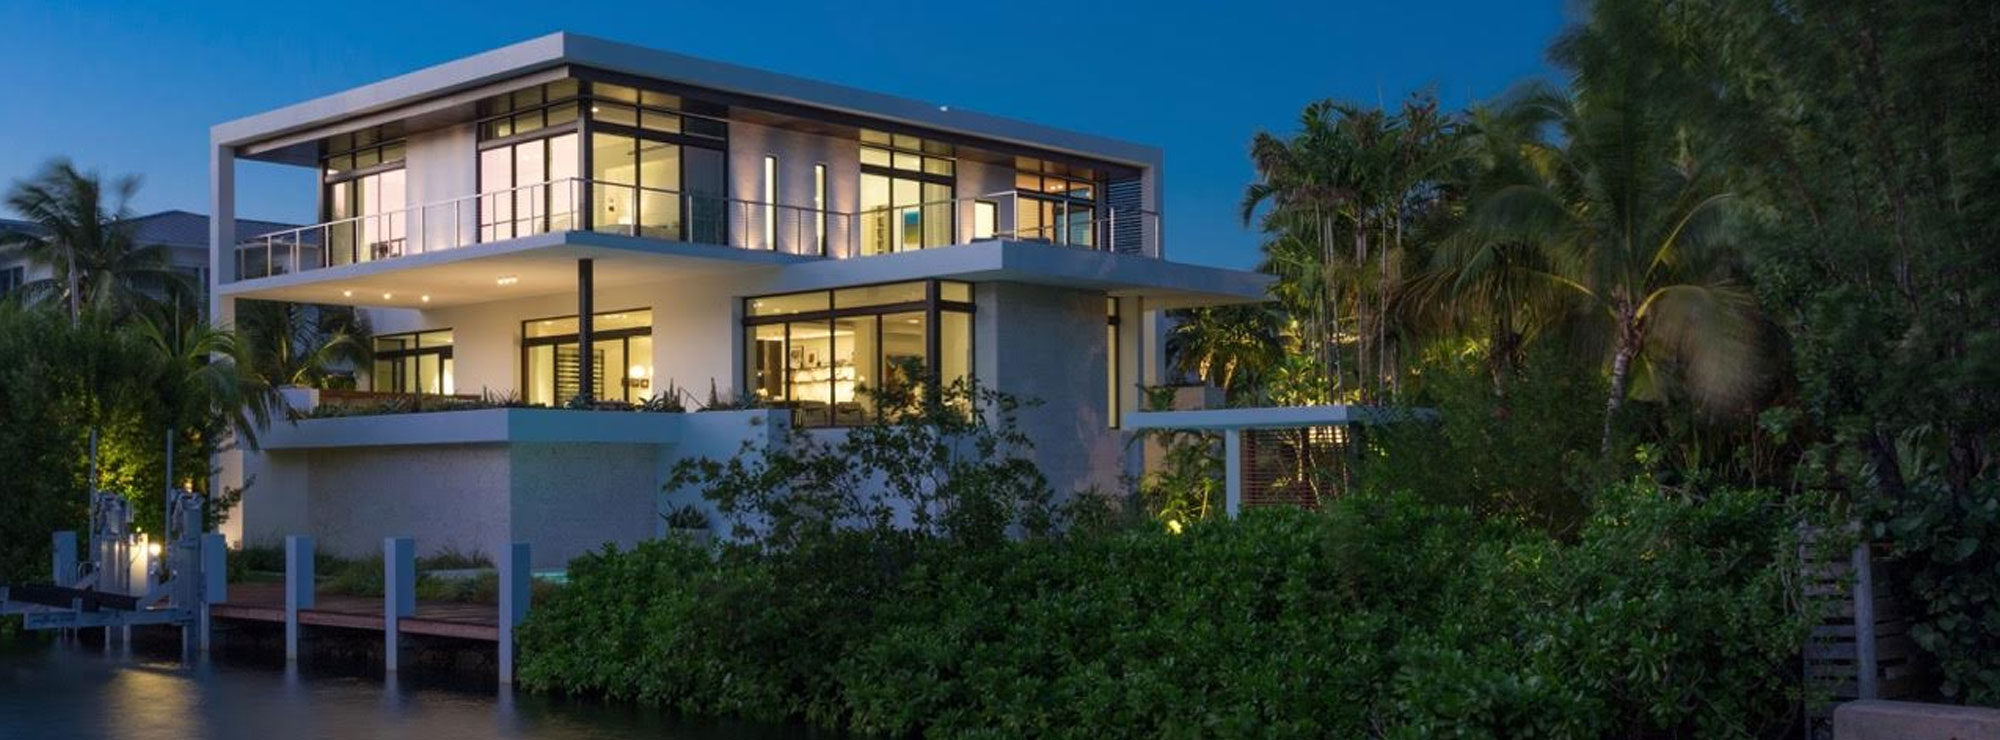 Hucker Residence, Coconut Grove, Florida